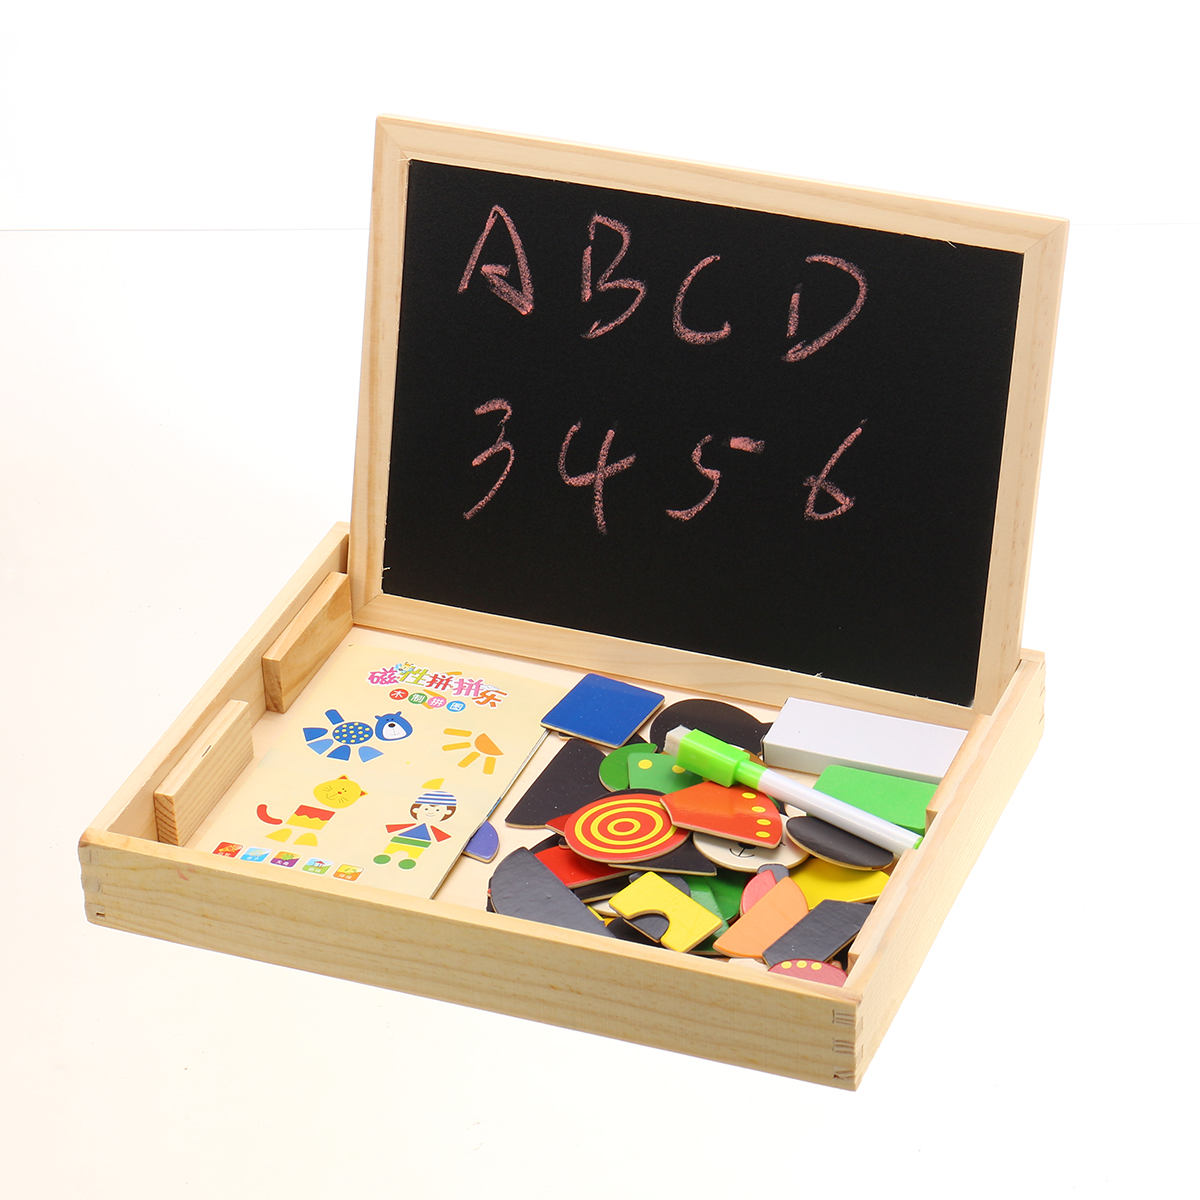 Baby's Learning Pen Wooden Puzzle Educational Magnetic Learning Box With